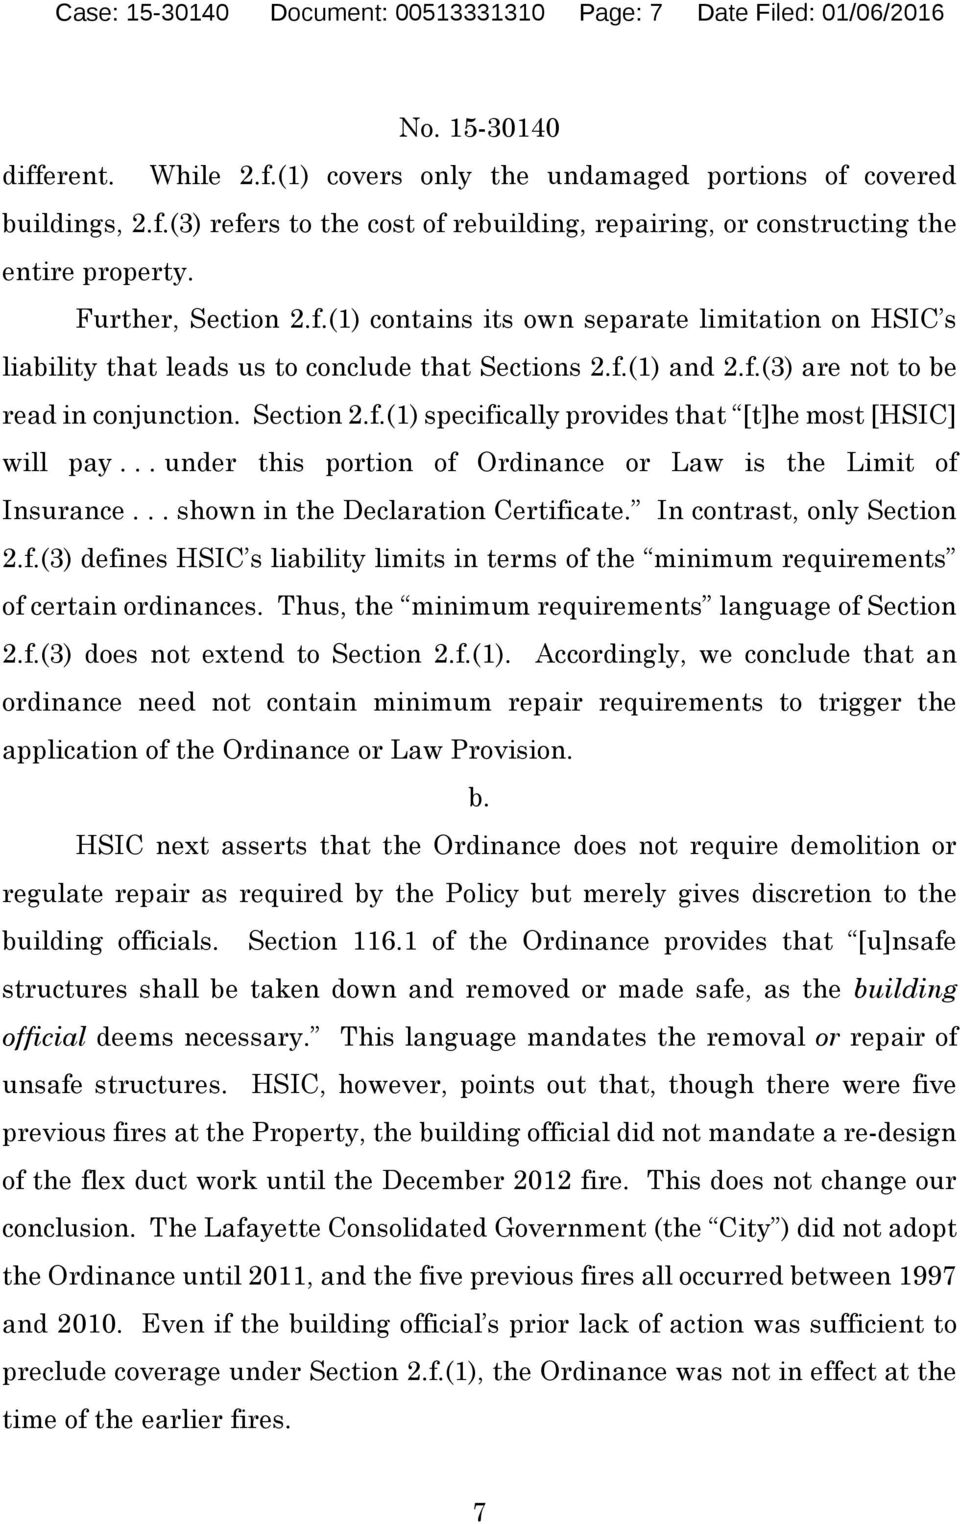 .. under this portion of Ordinance or Law is the Limit of Insurance... shown in the Declaration Certificate. In contrast, only Section 2.f.(3) defines HSIC s liability limits in terms of the minimum requirements of certain ordinances.